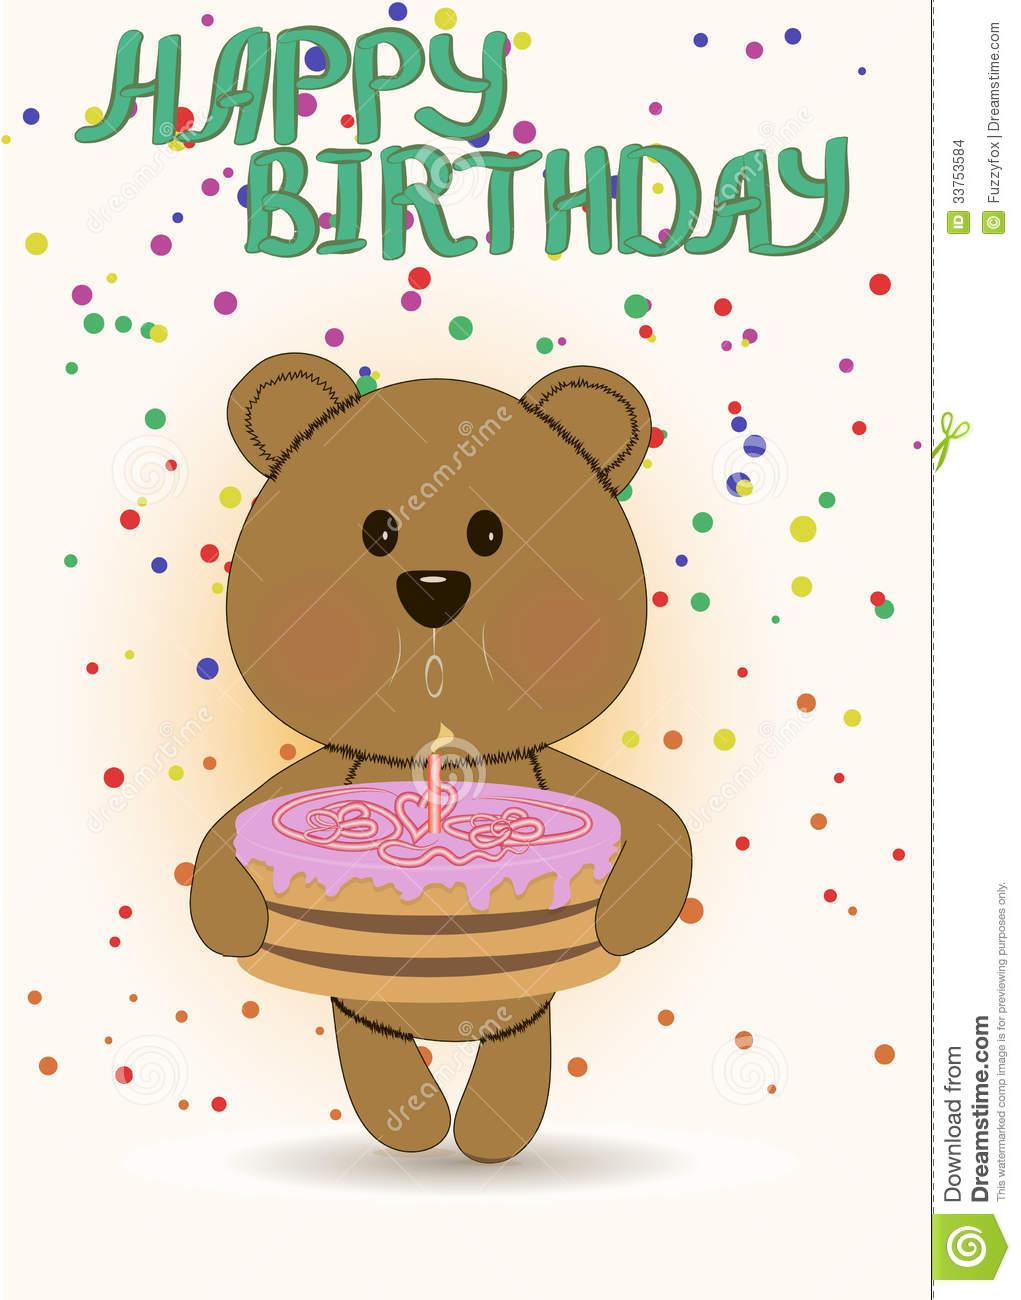 Happy Birthday Card With Cute Teddy Bear Stock Images - Image ...